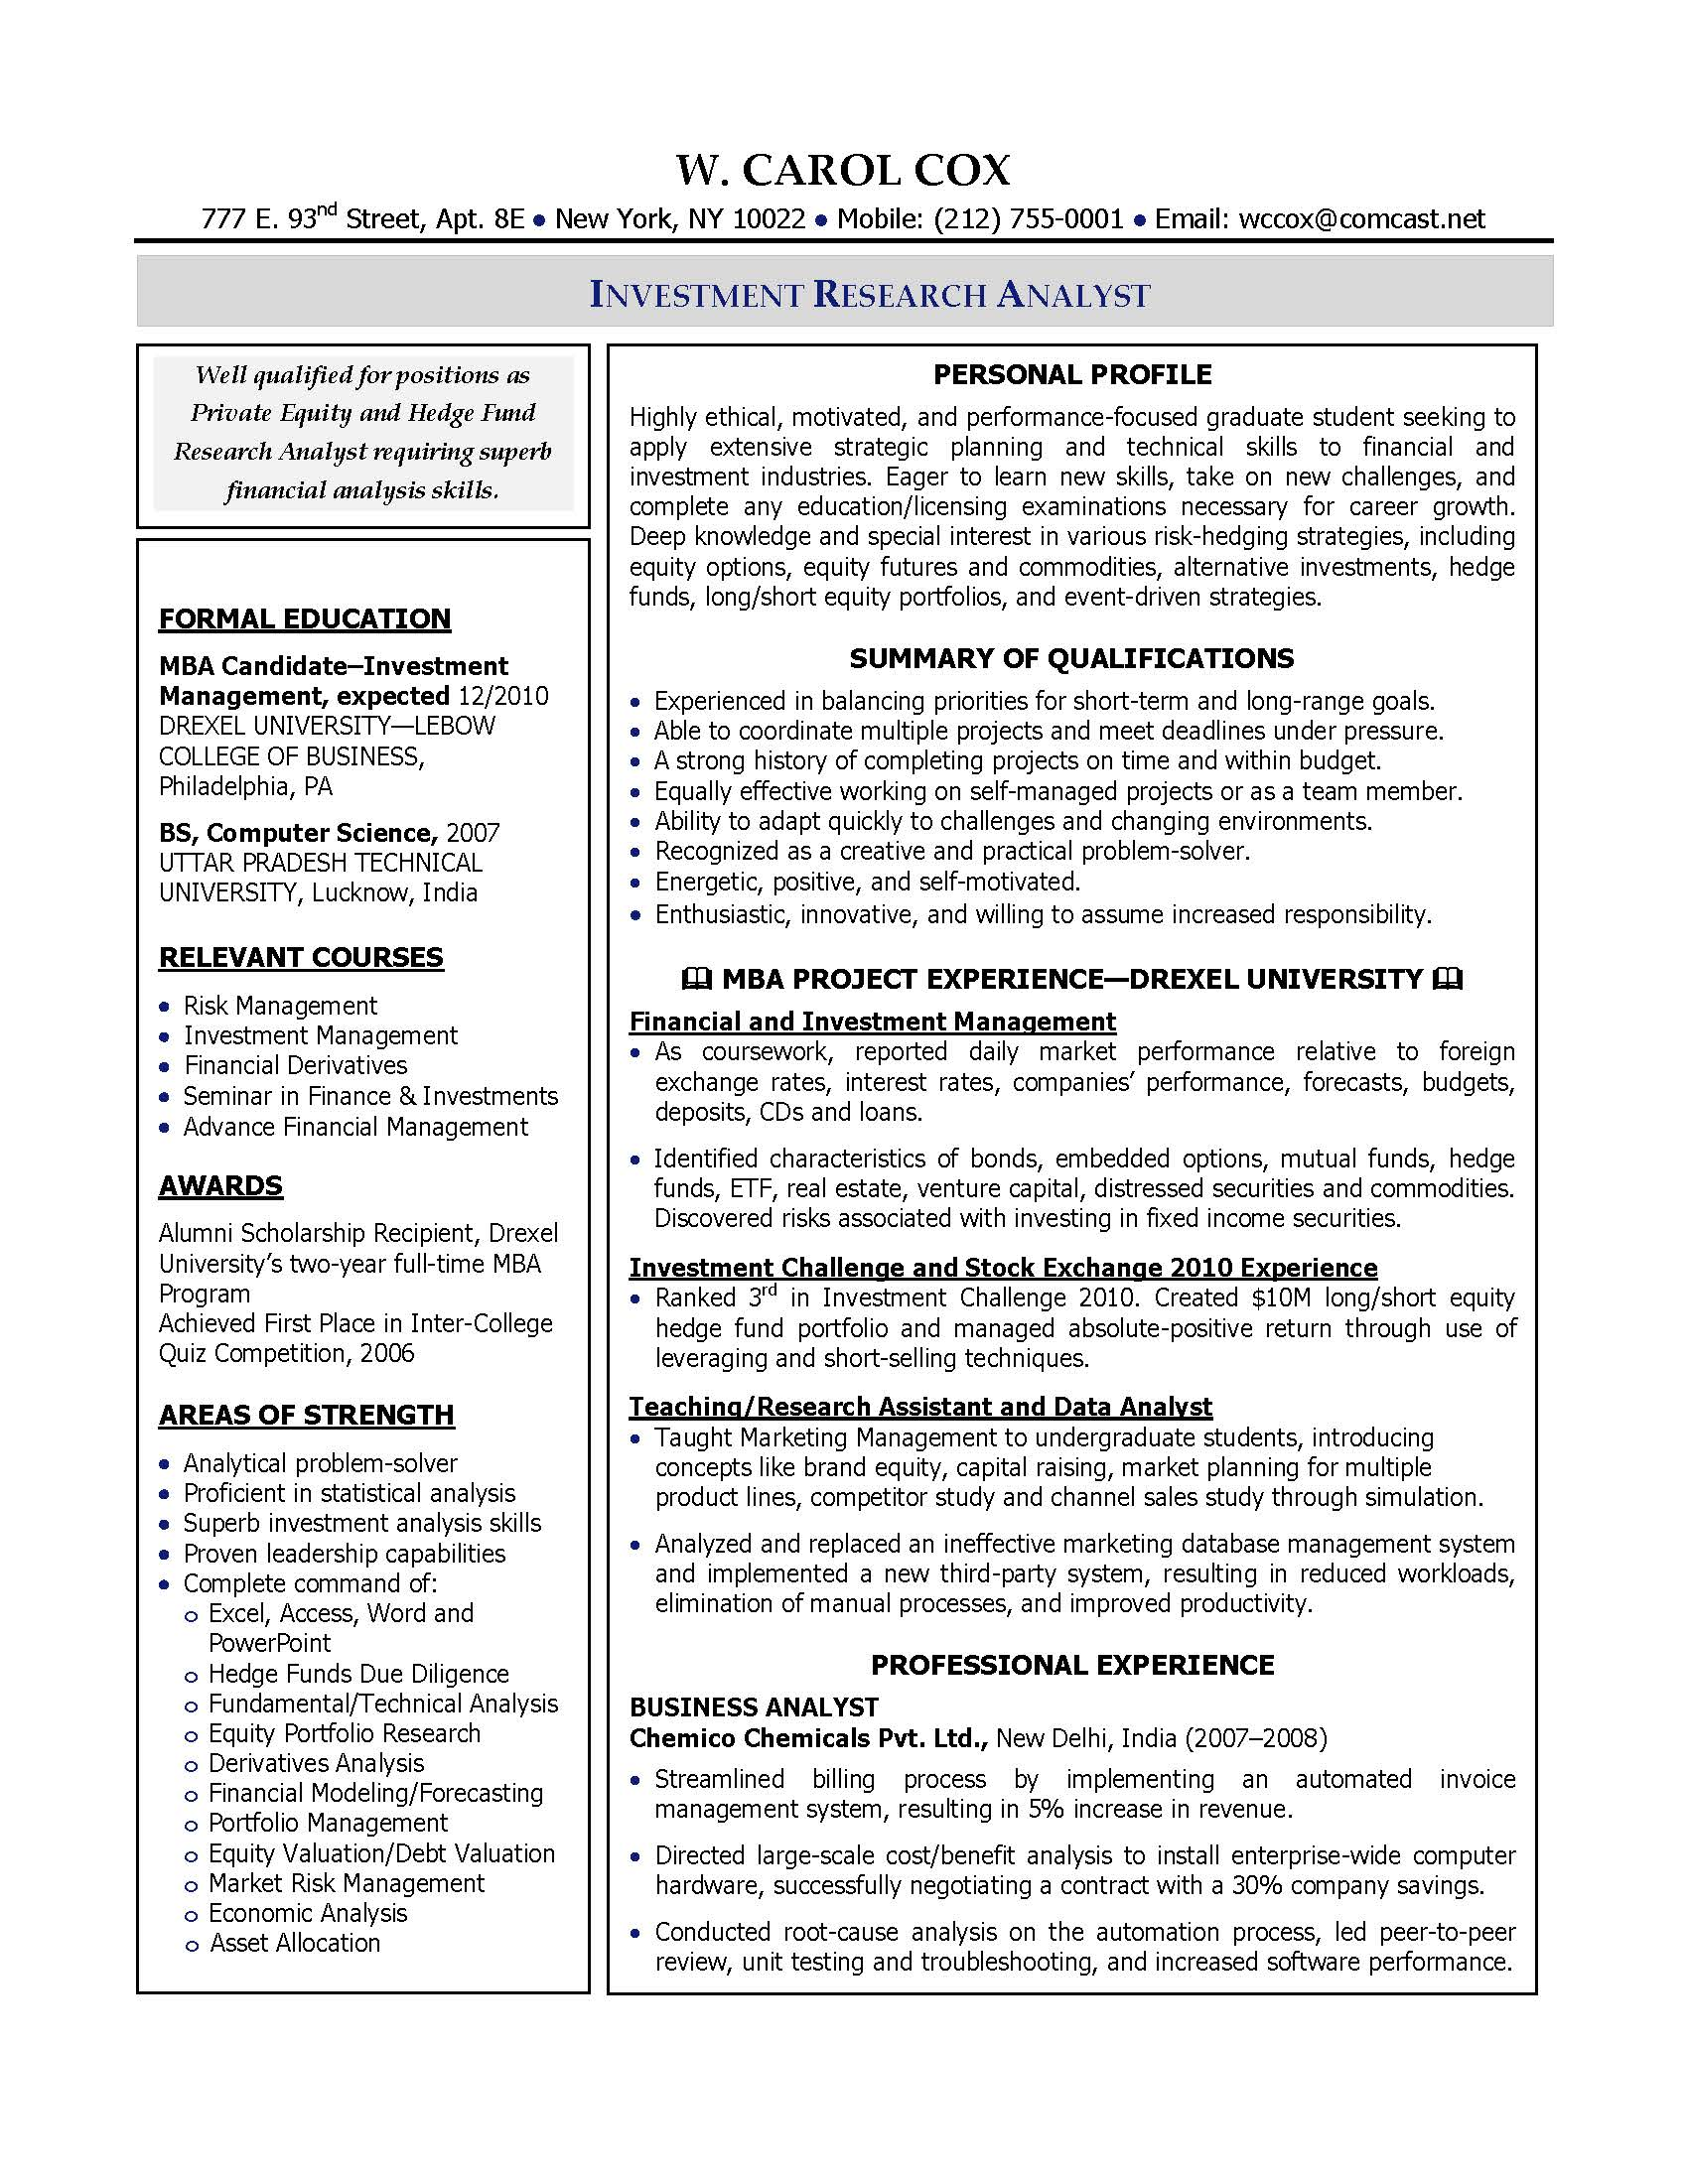 investment research analyst resume sample provided by elite resume writing services - Scientific Resume Examples